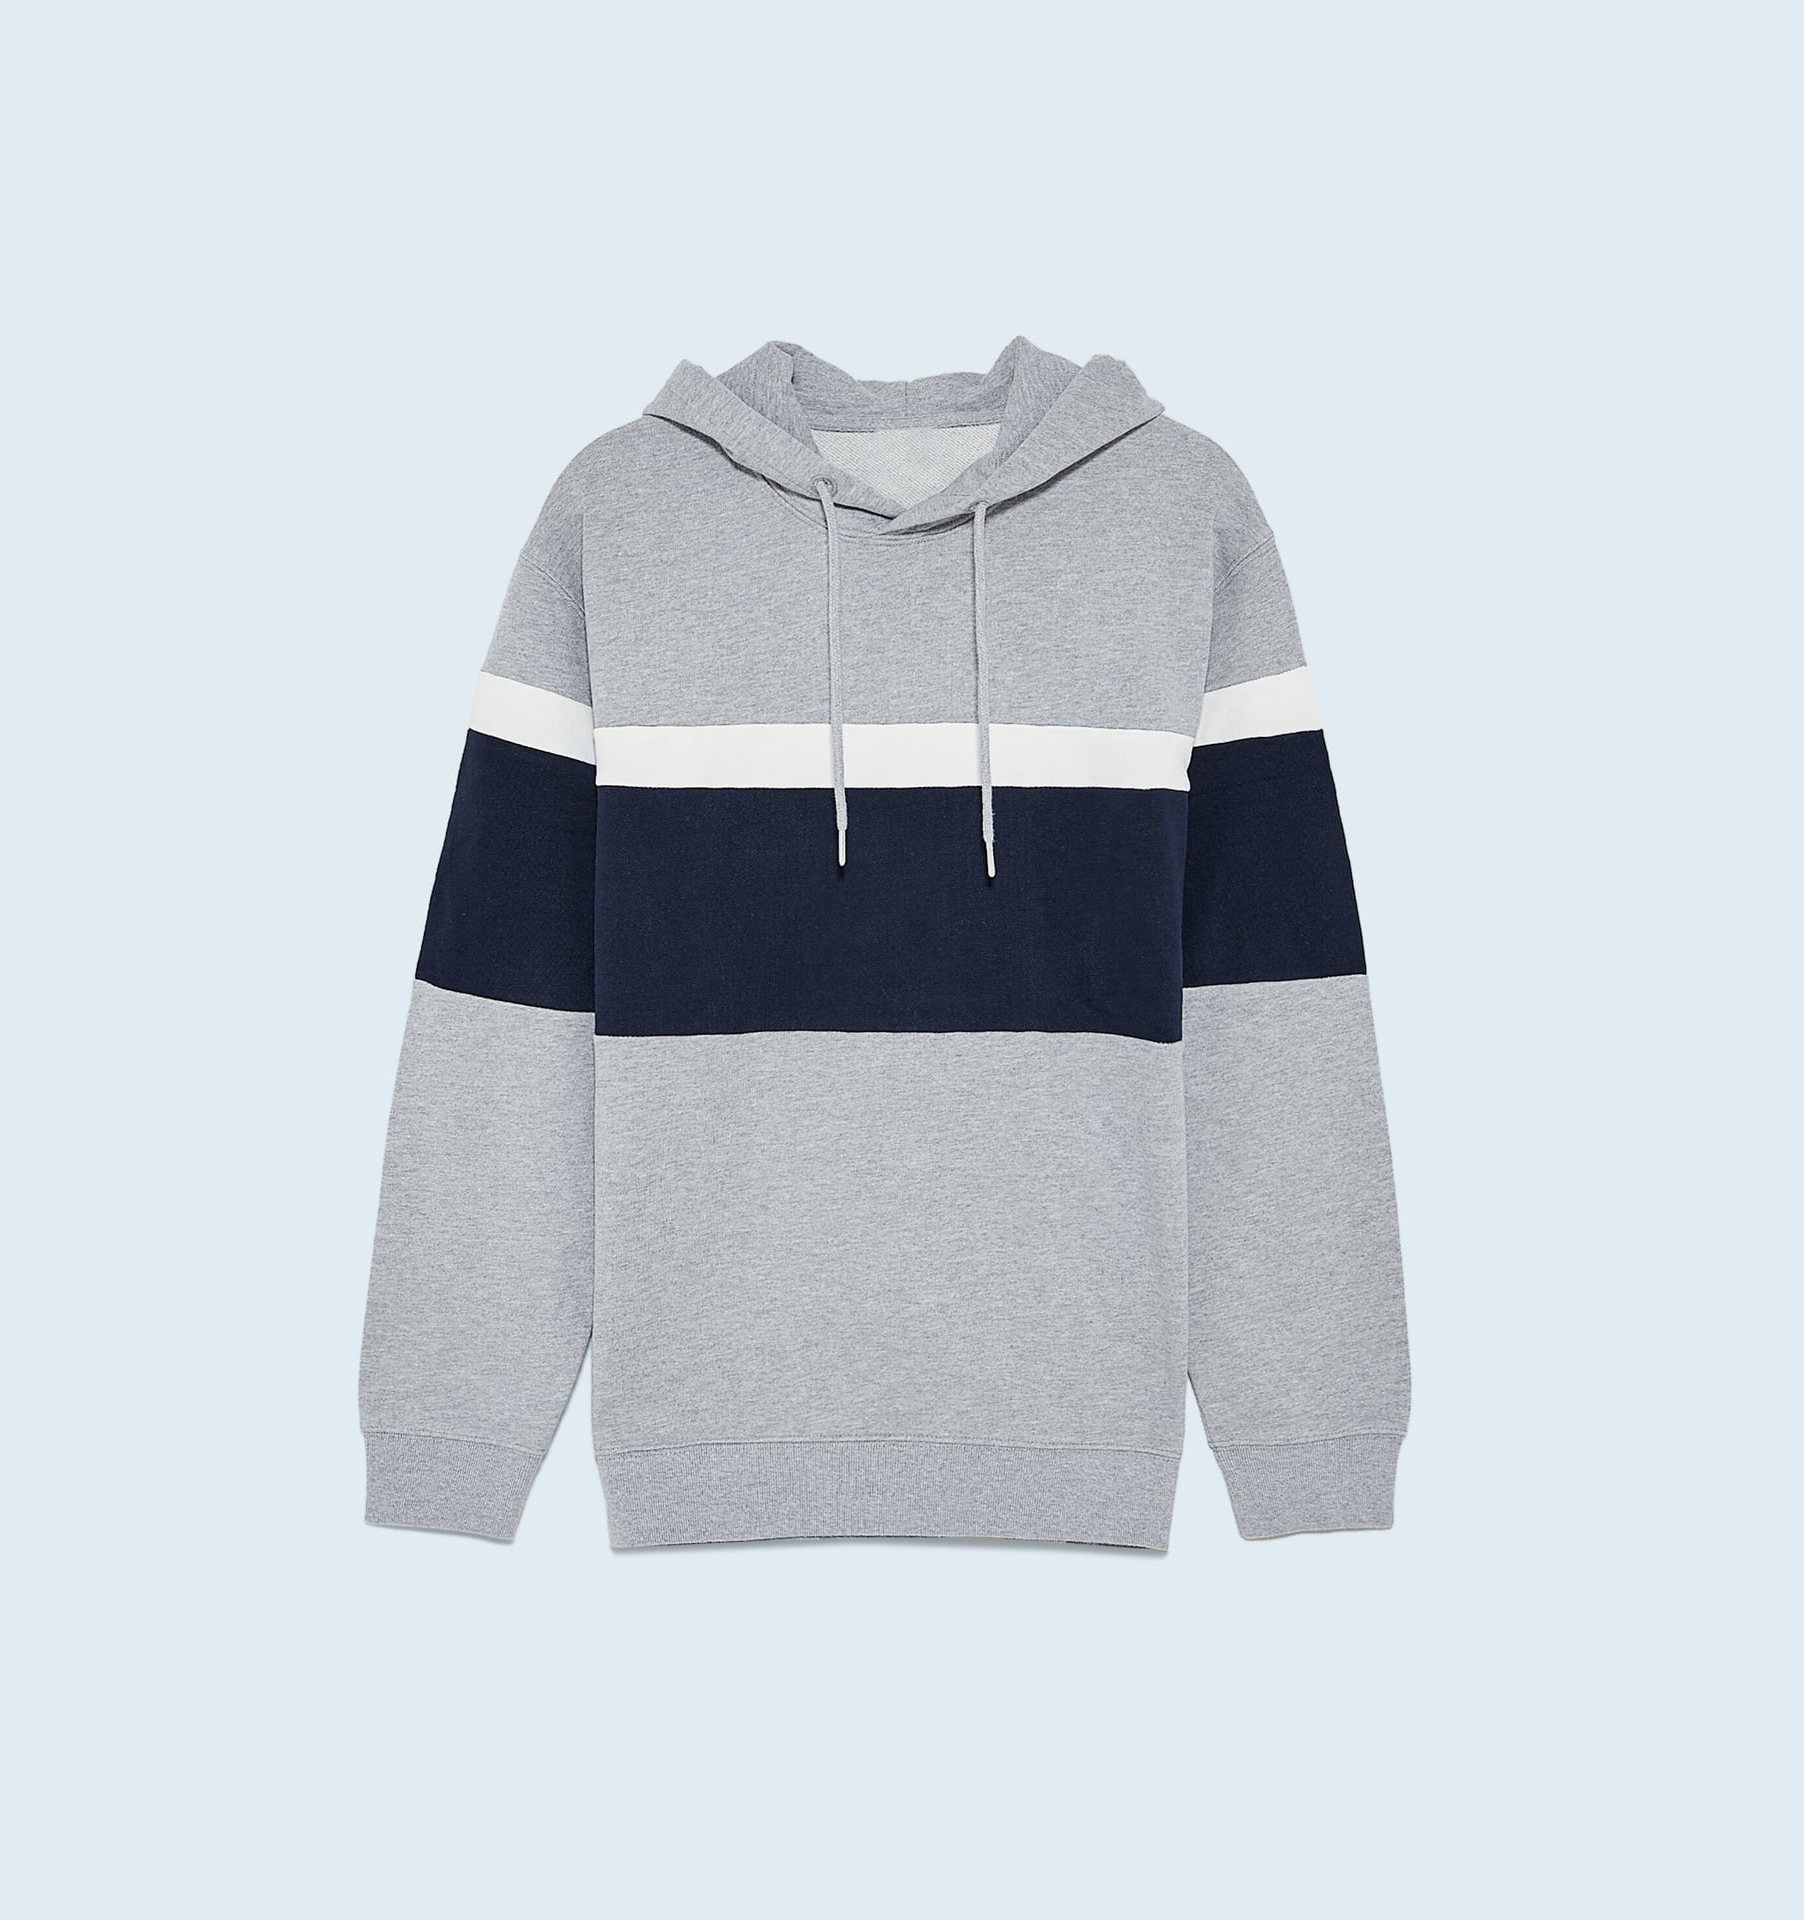 2020New Wholesale custom fashion design men's hoodies loose rib hoodie casual men's hoodie